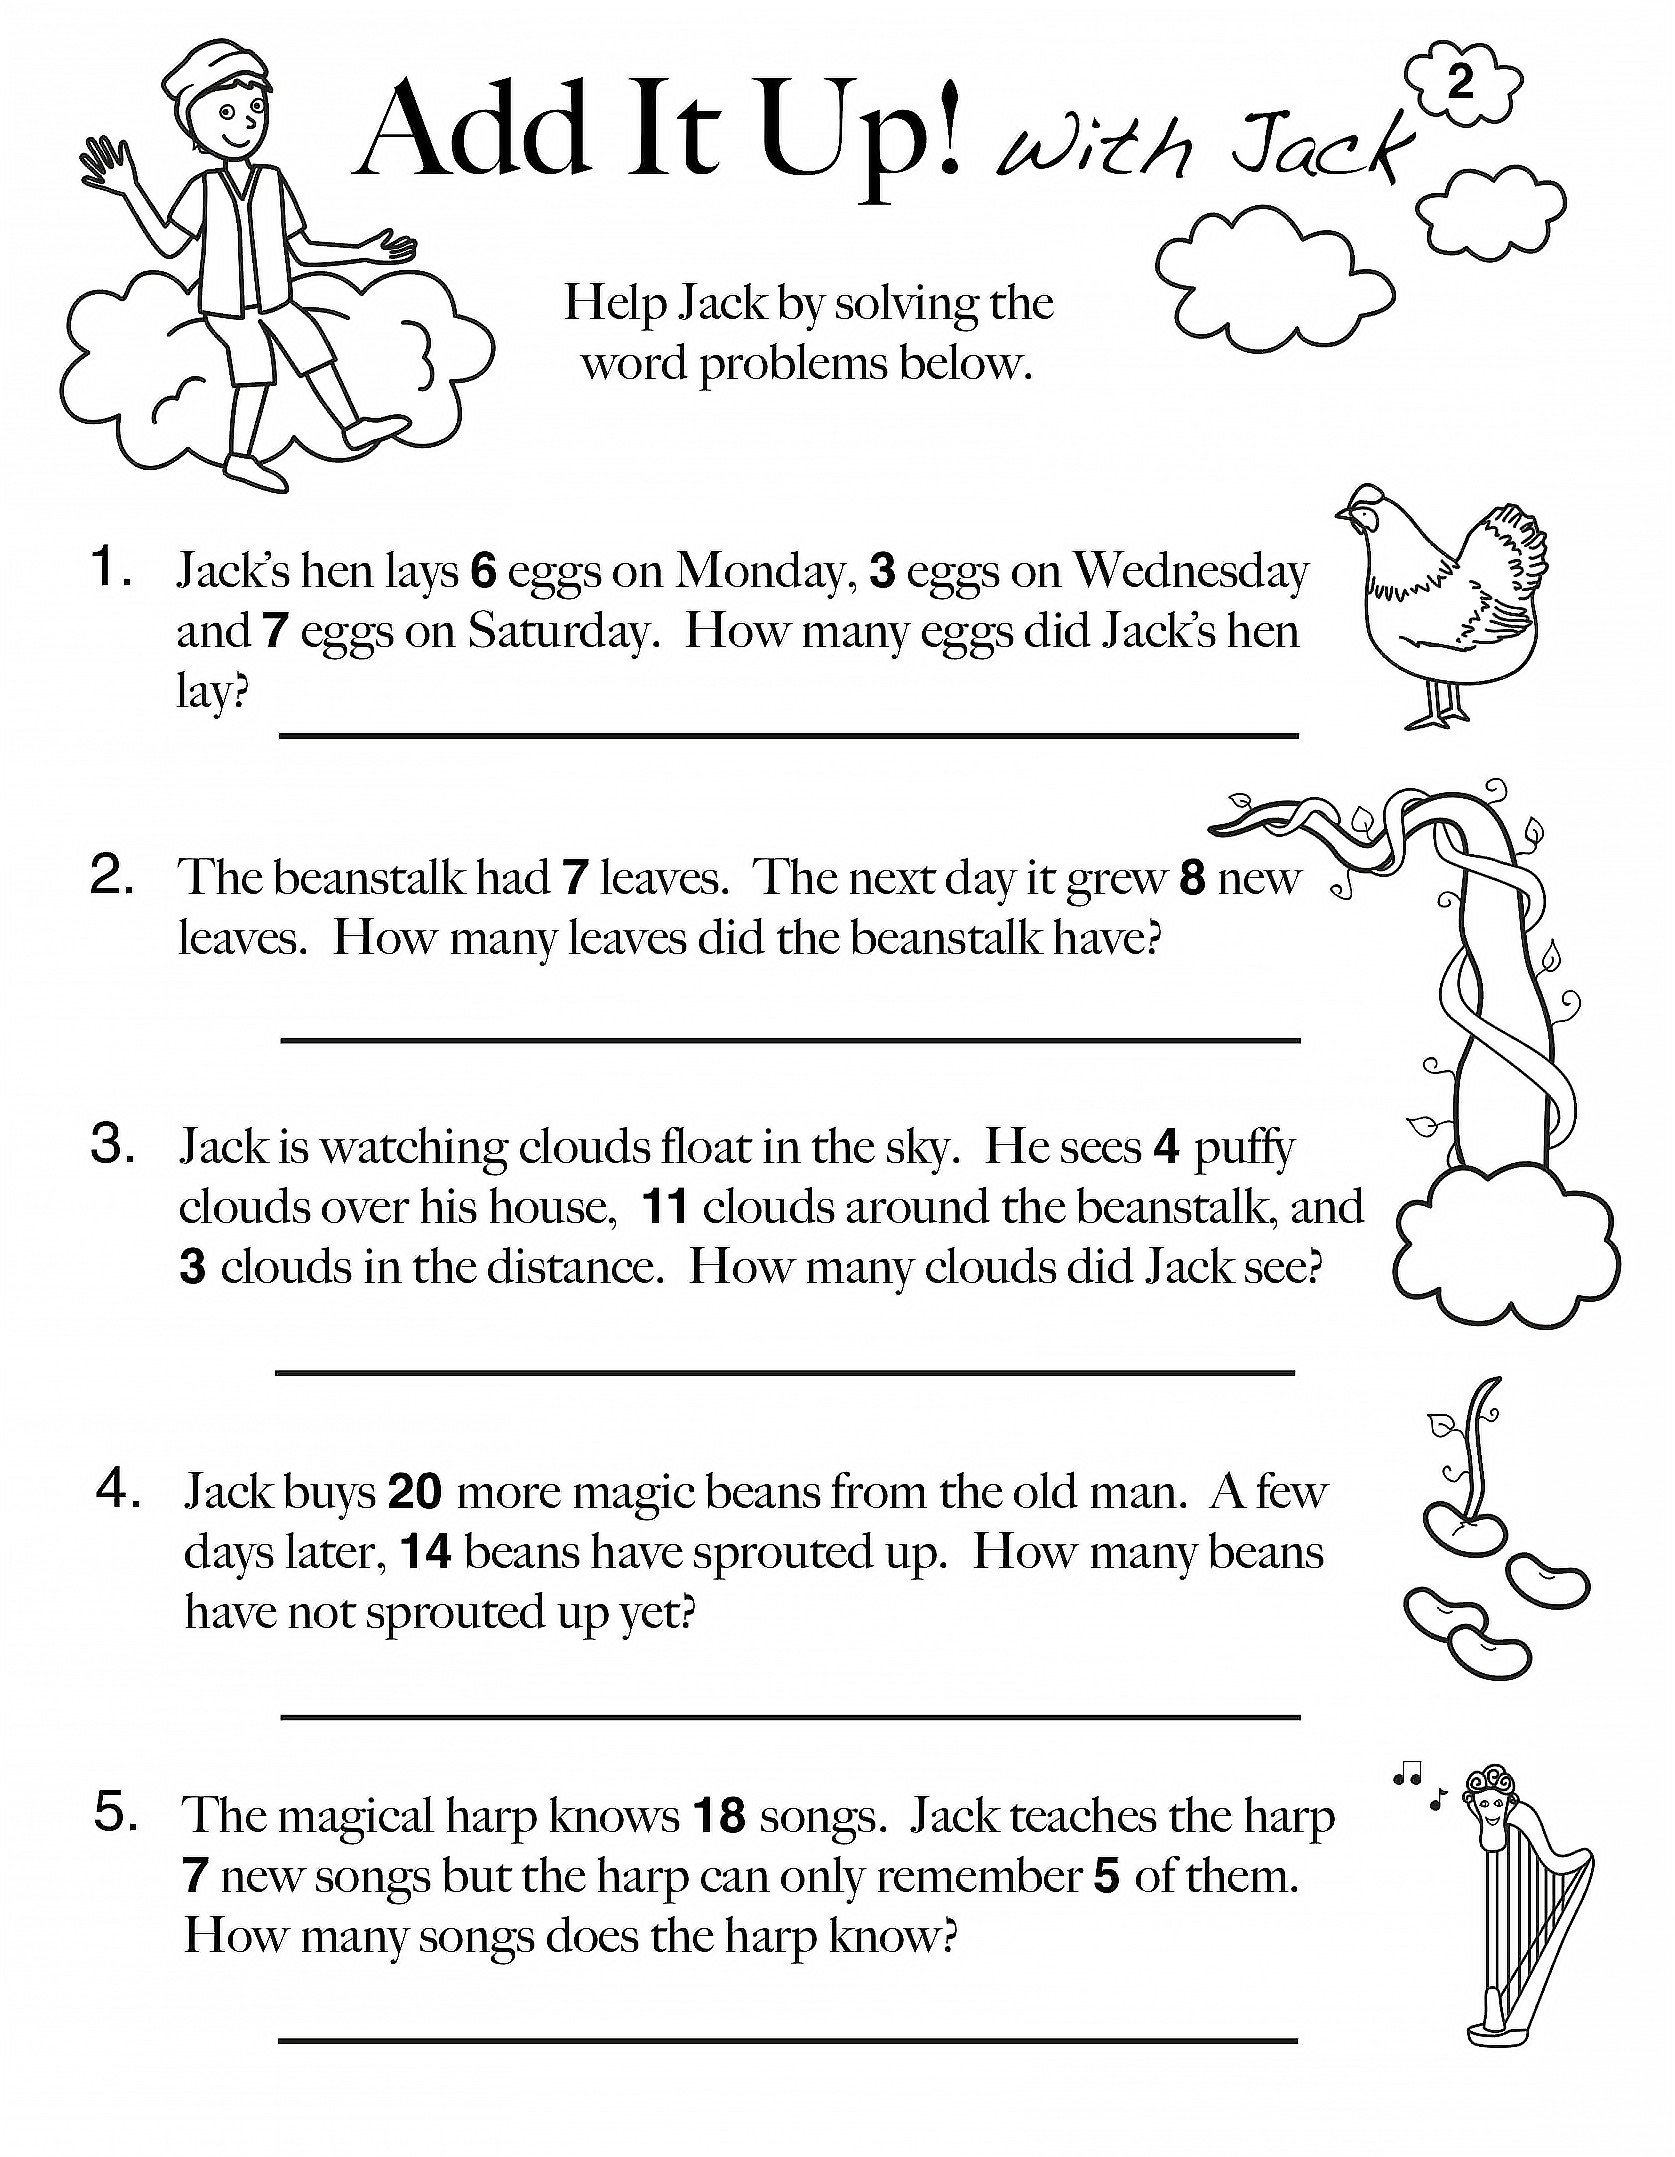 Word Problems Worksheets 1st Grade Math Worksheet 43 1st Grade Maths Worksheets Picture Ideas